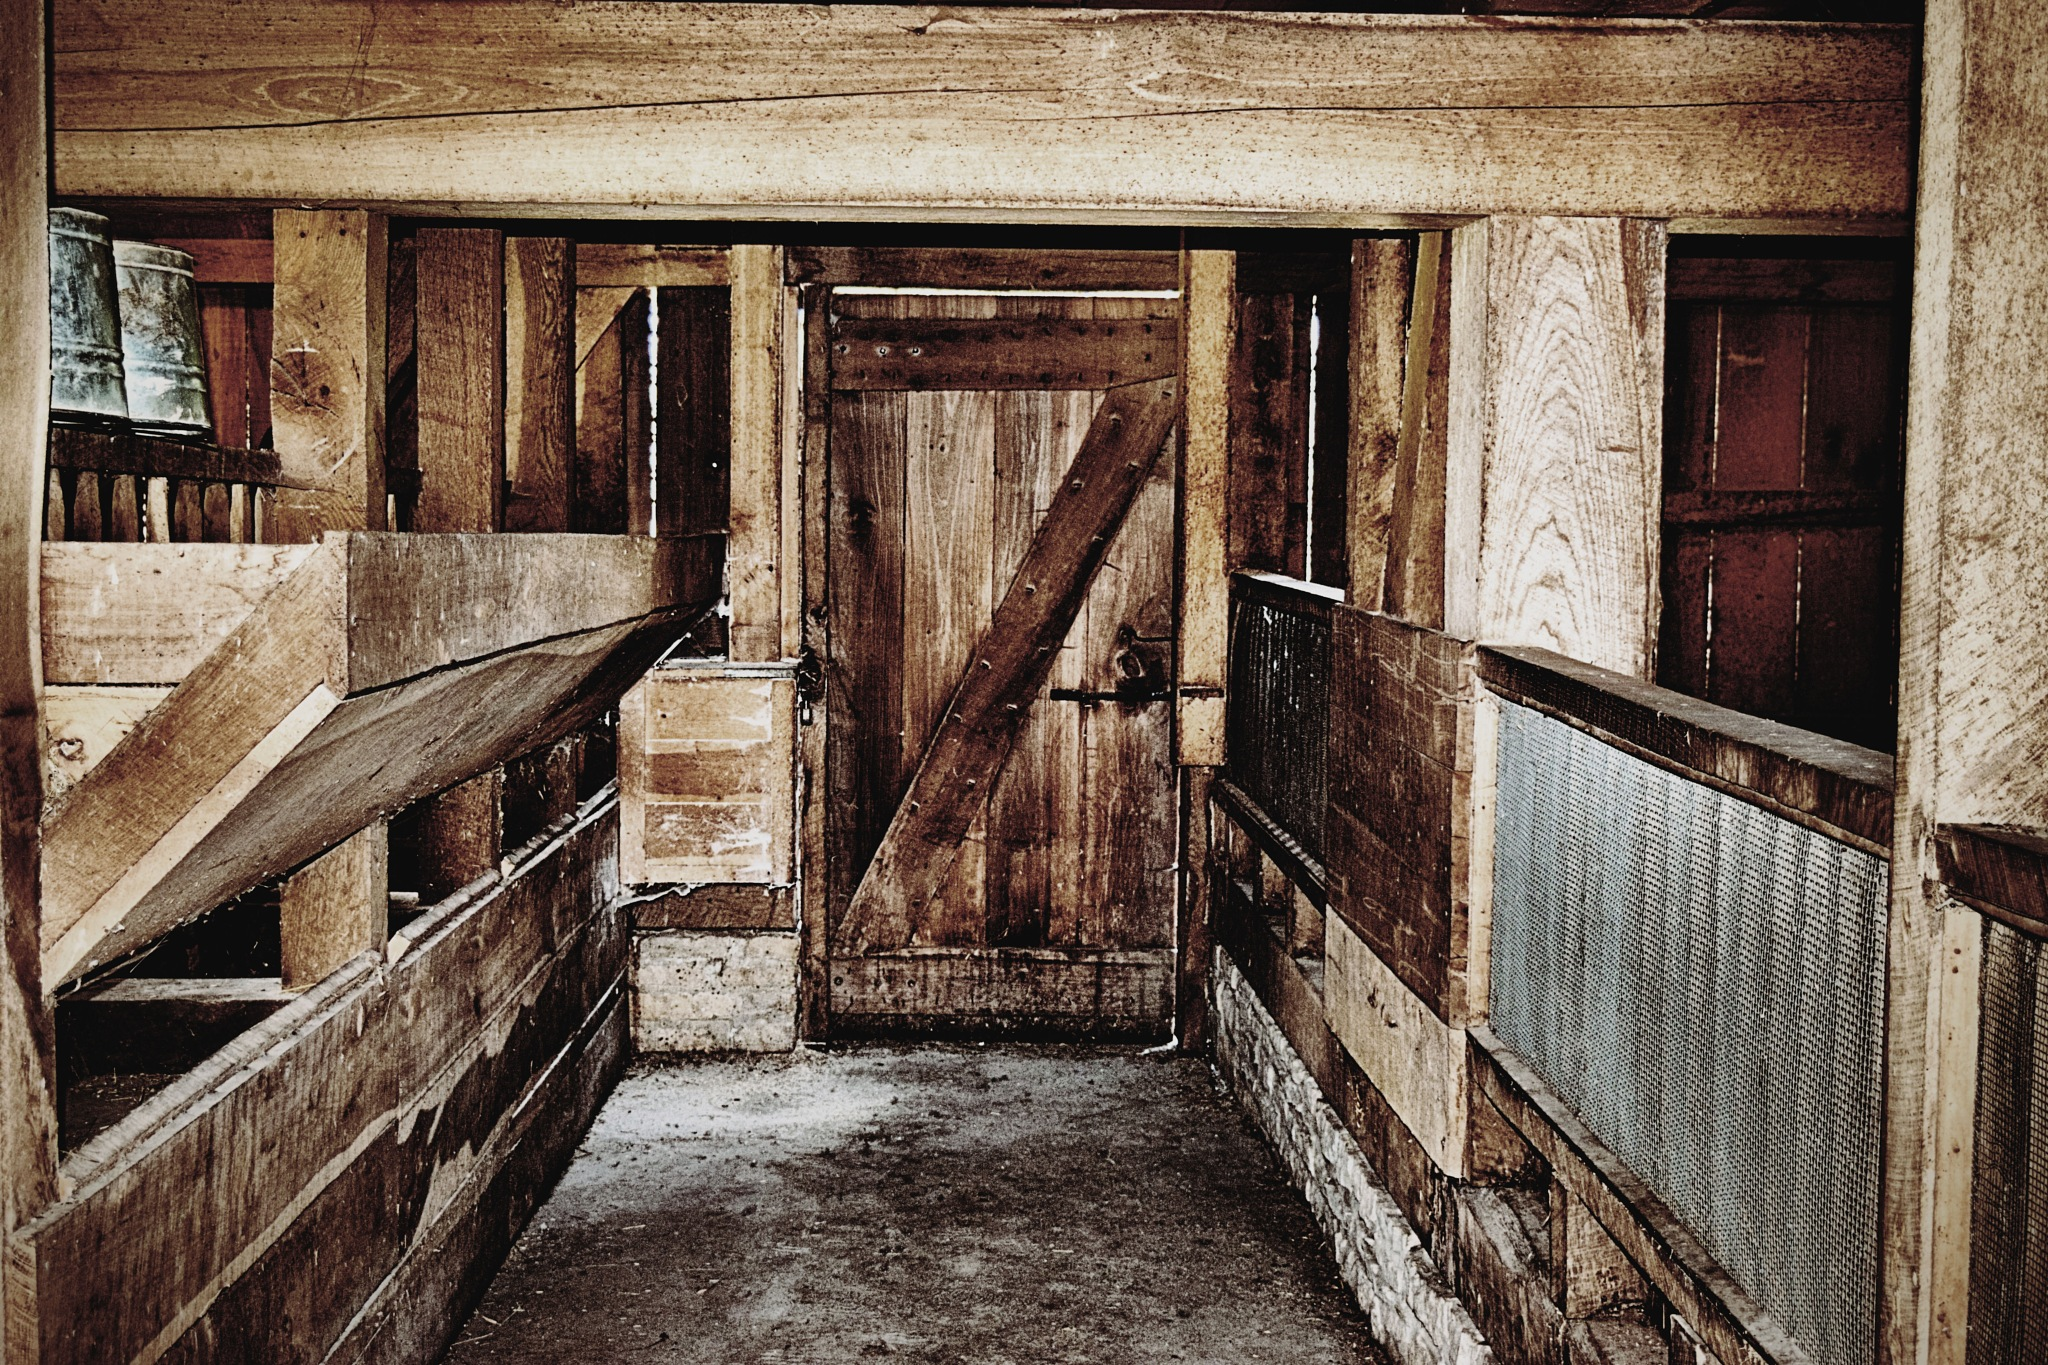 The barn by Sandy L